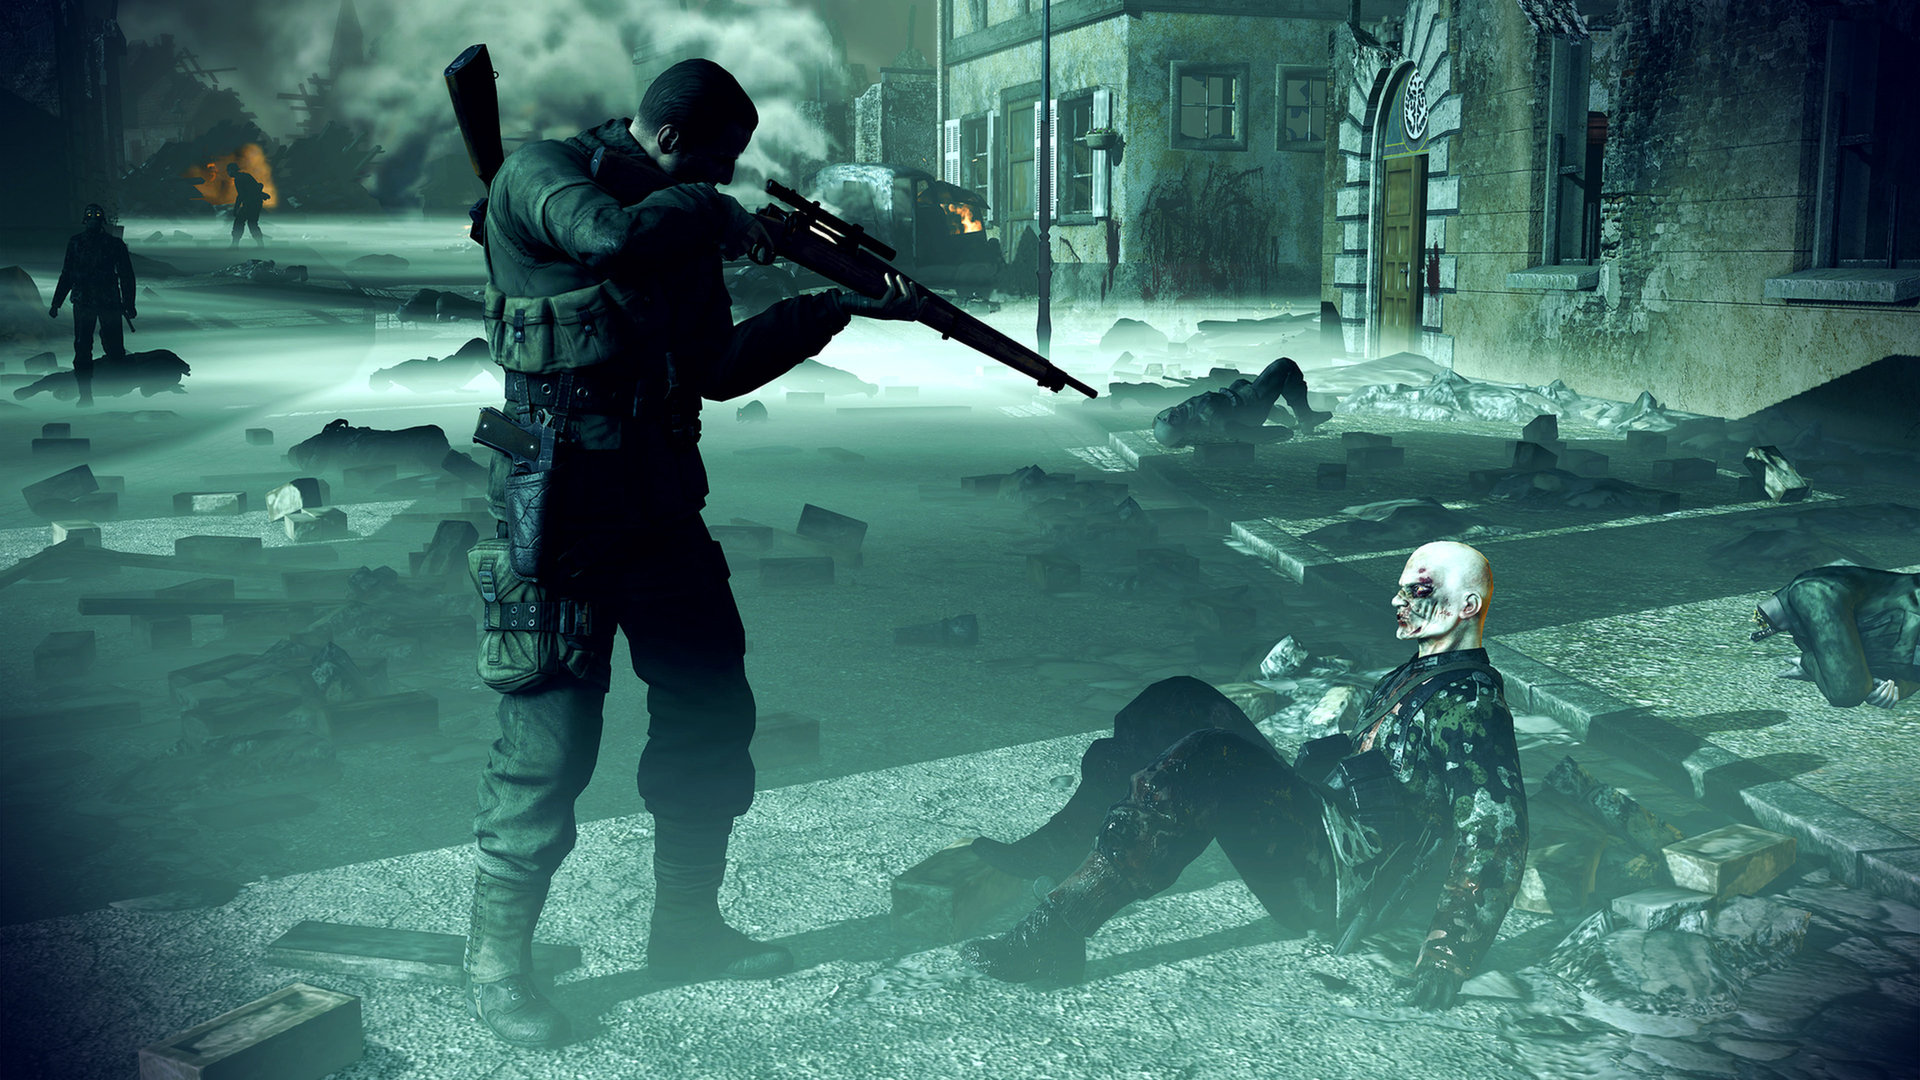 Sniper Elite Nazi Zombie Army Wallpapers 1920x1080 Full Hd 1080p